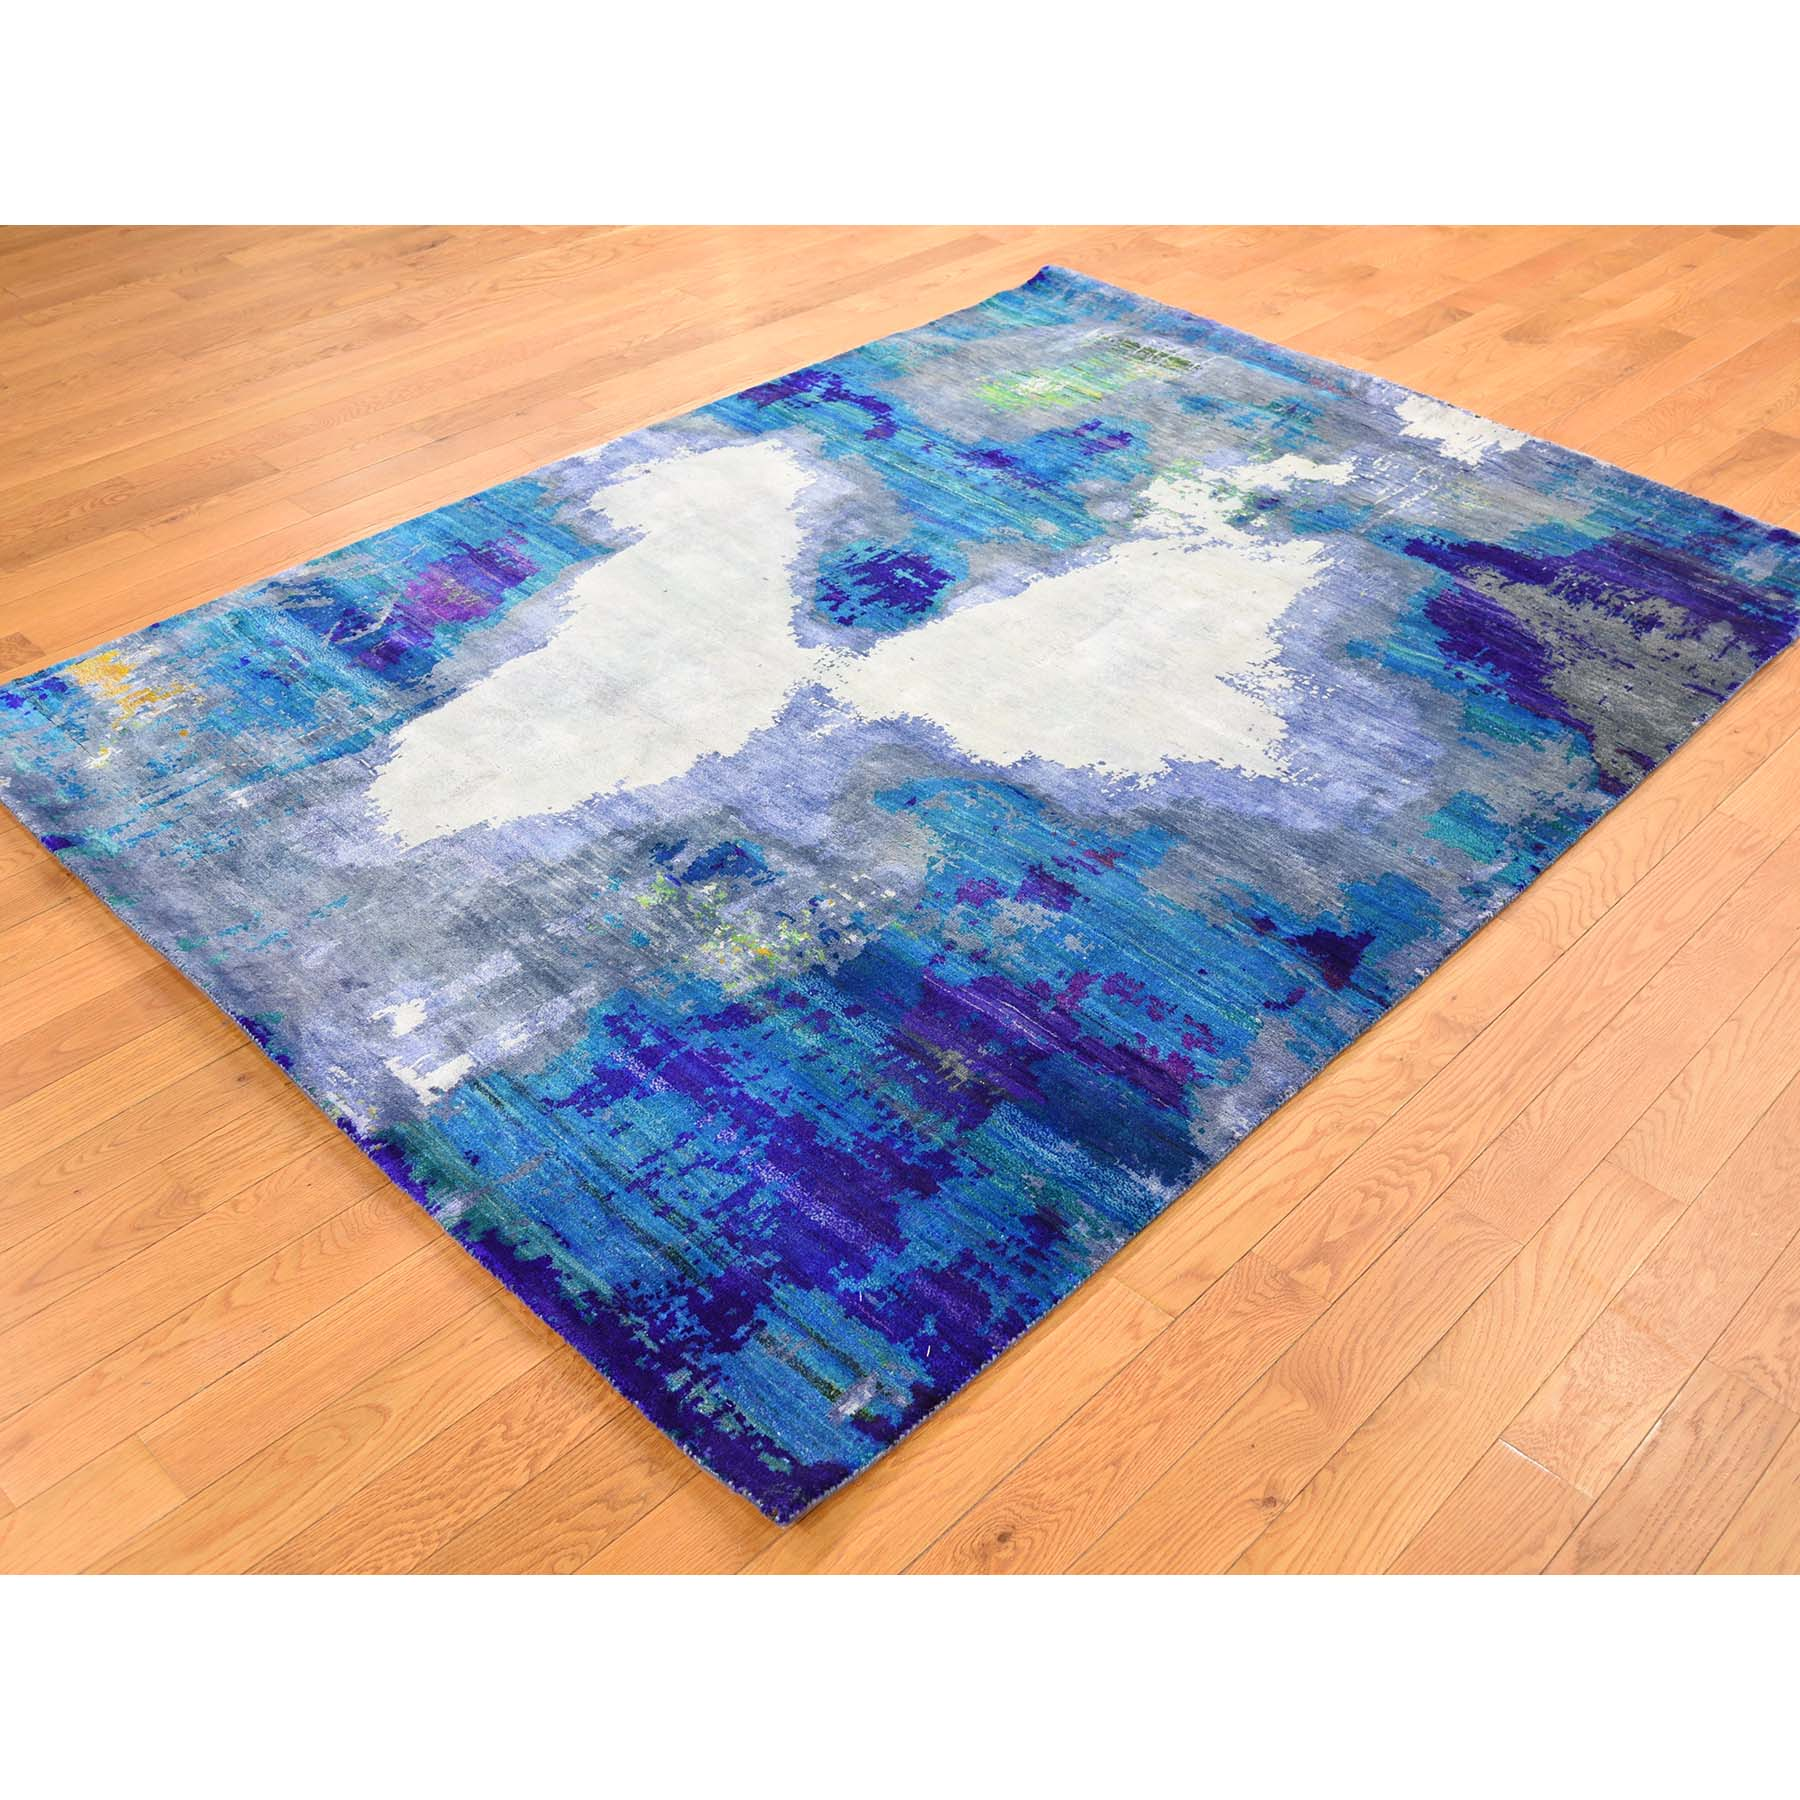 "Handmade Modern and Contemporary Rectangle Rug > Design# SH39997 > Size: 5'-0"" x 7'-0"" [ONLINE ONLY]"